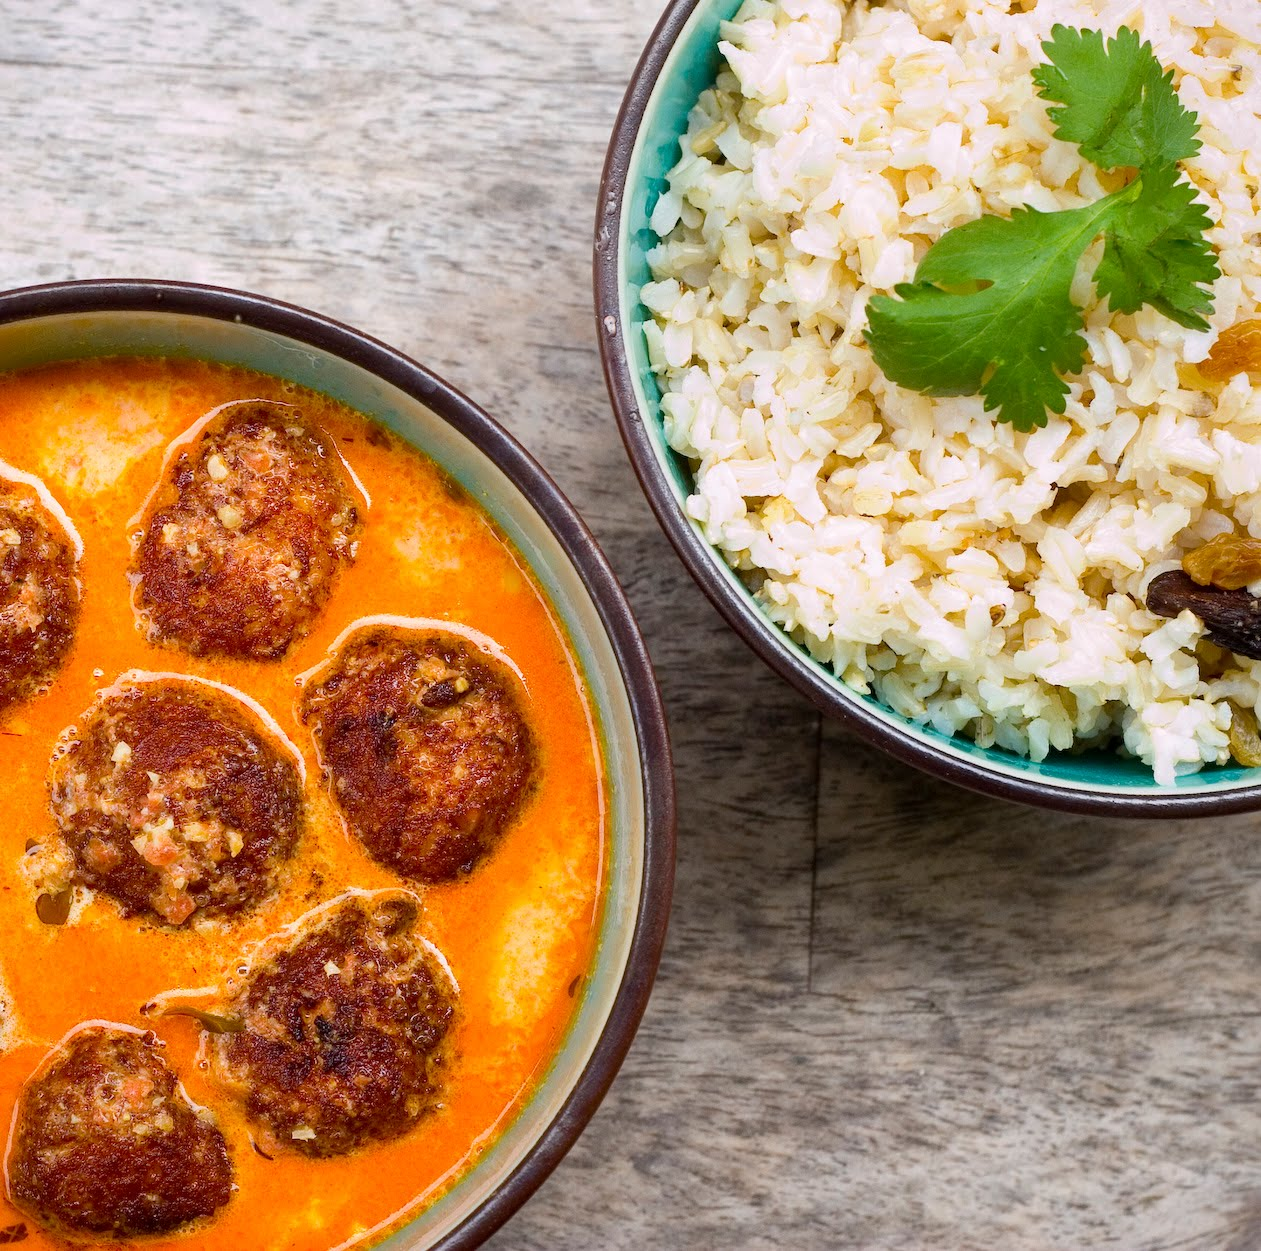 Malai Kofta/Cheese Dumplings Simmered In A Creamy Sauce Recipes ...